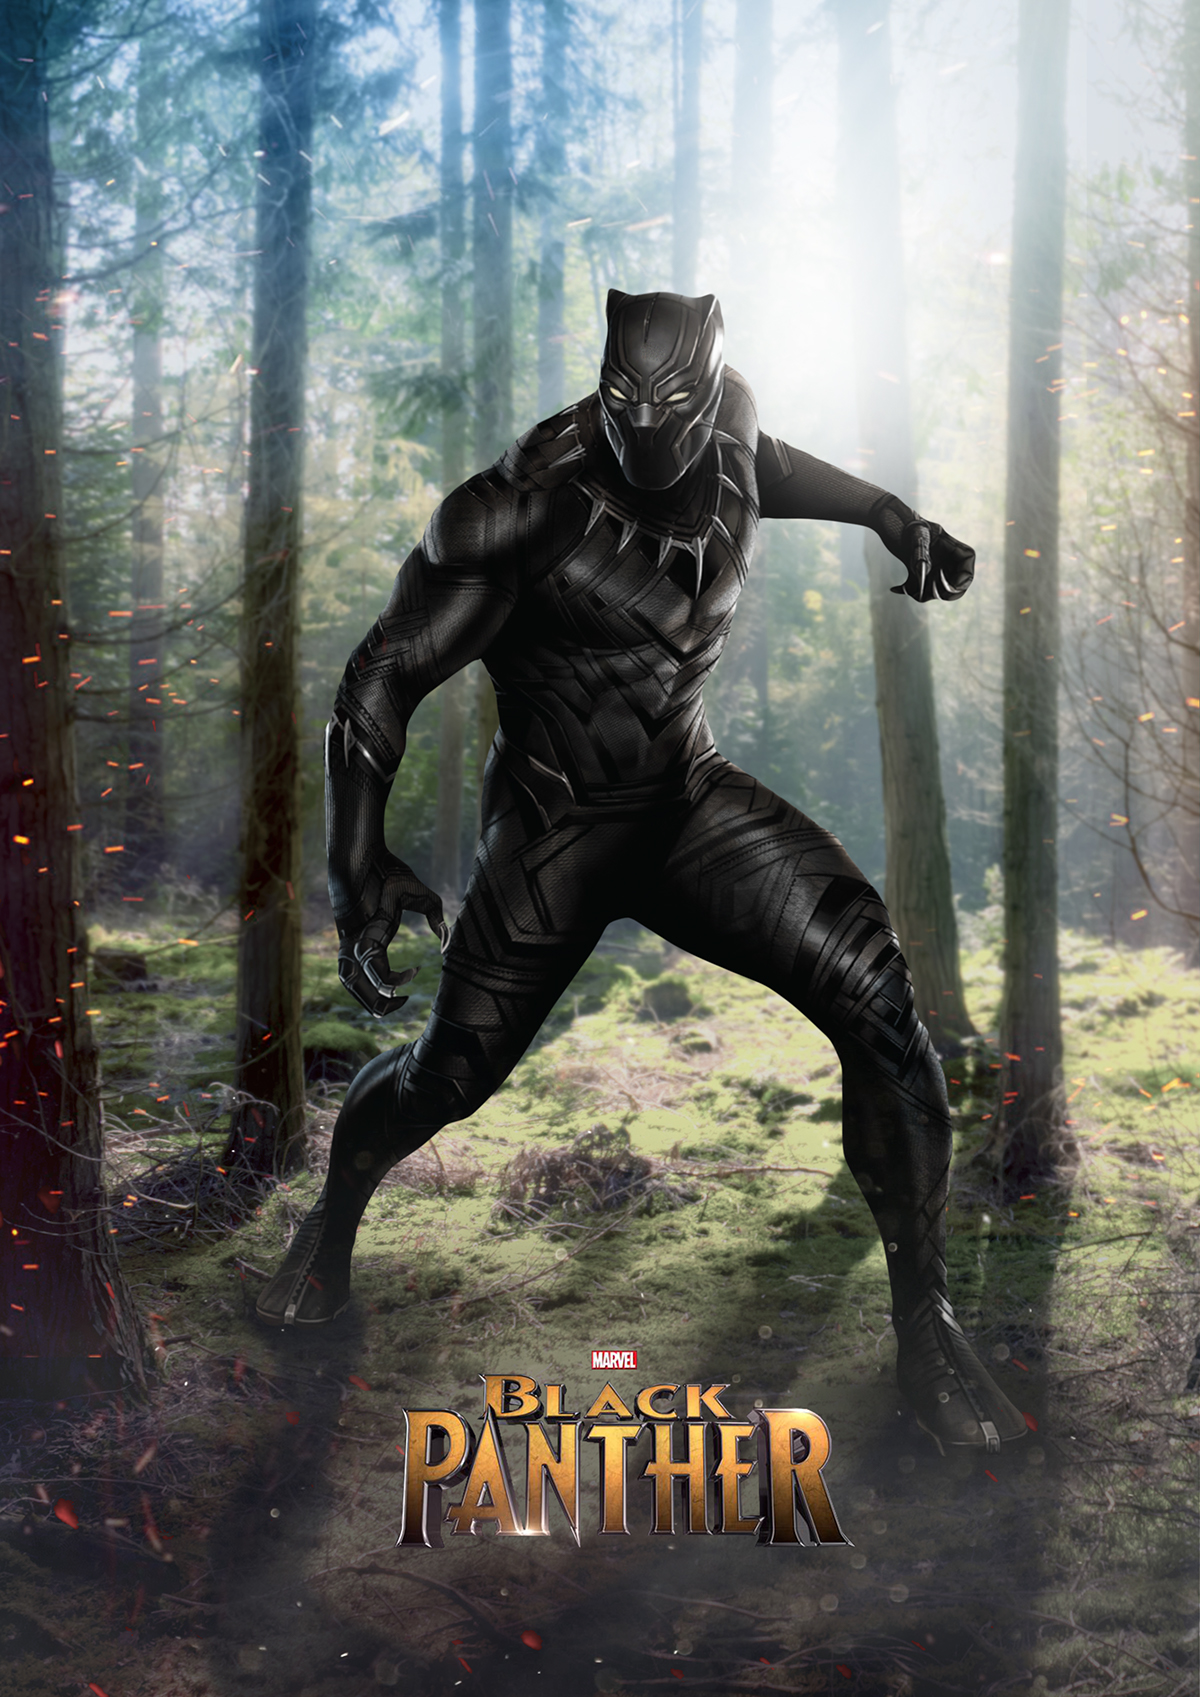 Black Panther Movie Poster Concept on Behance